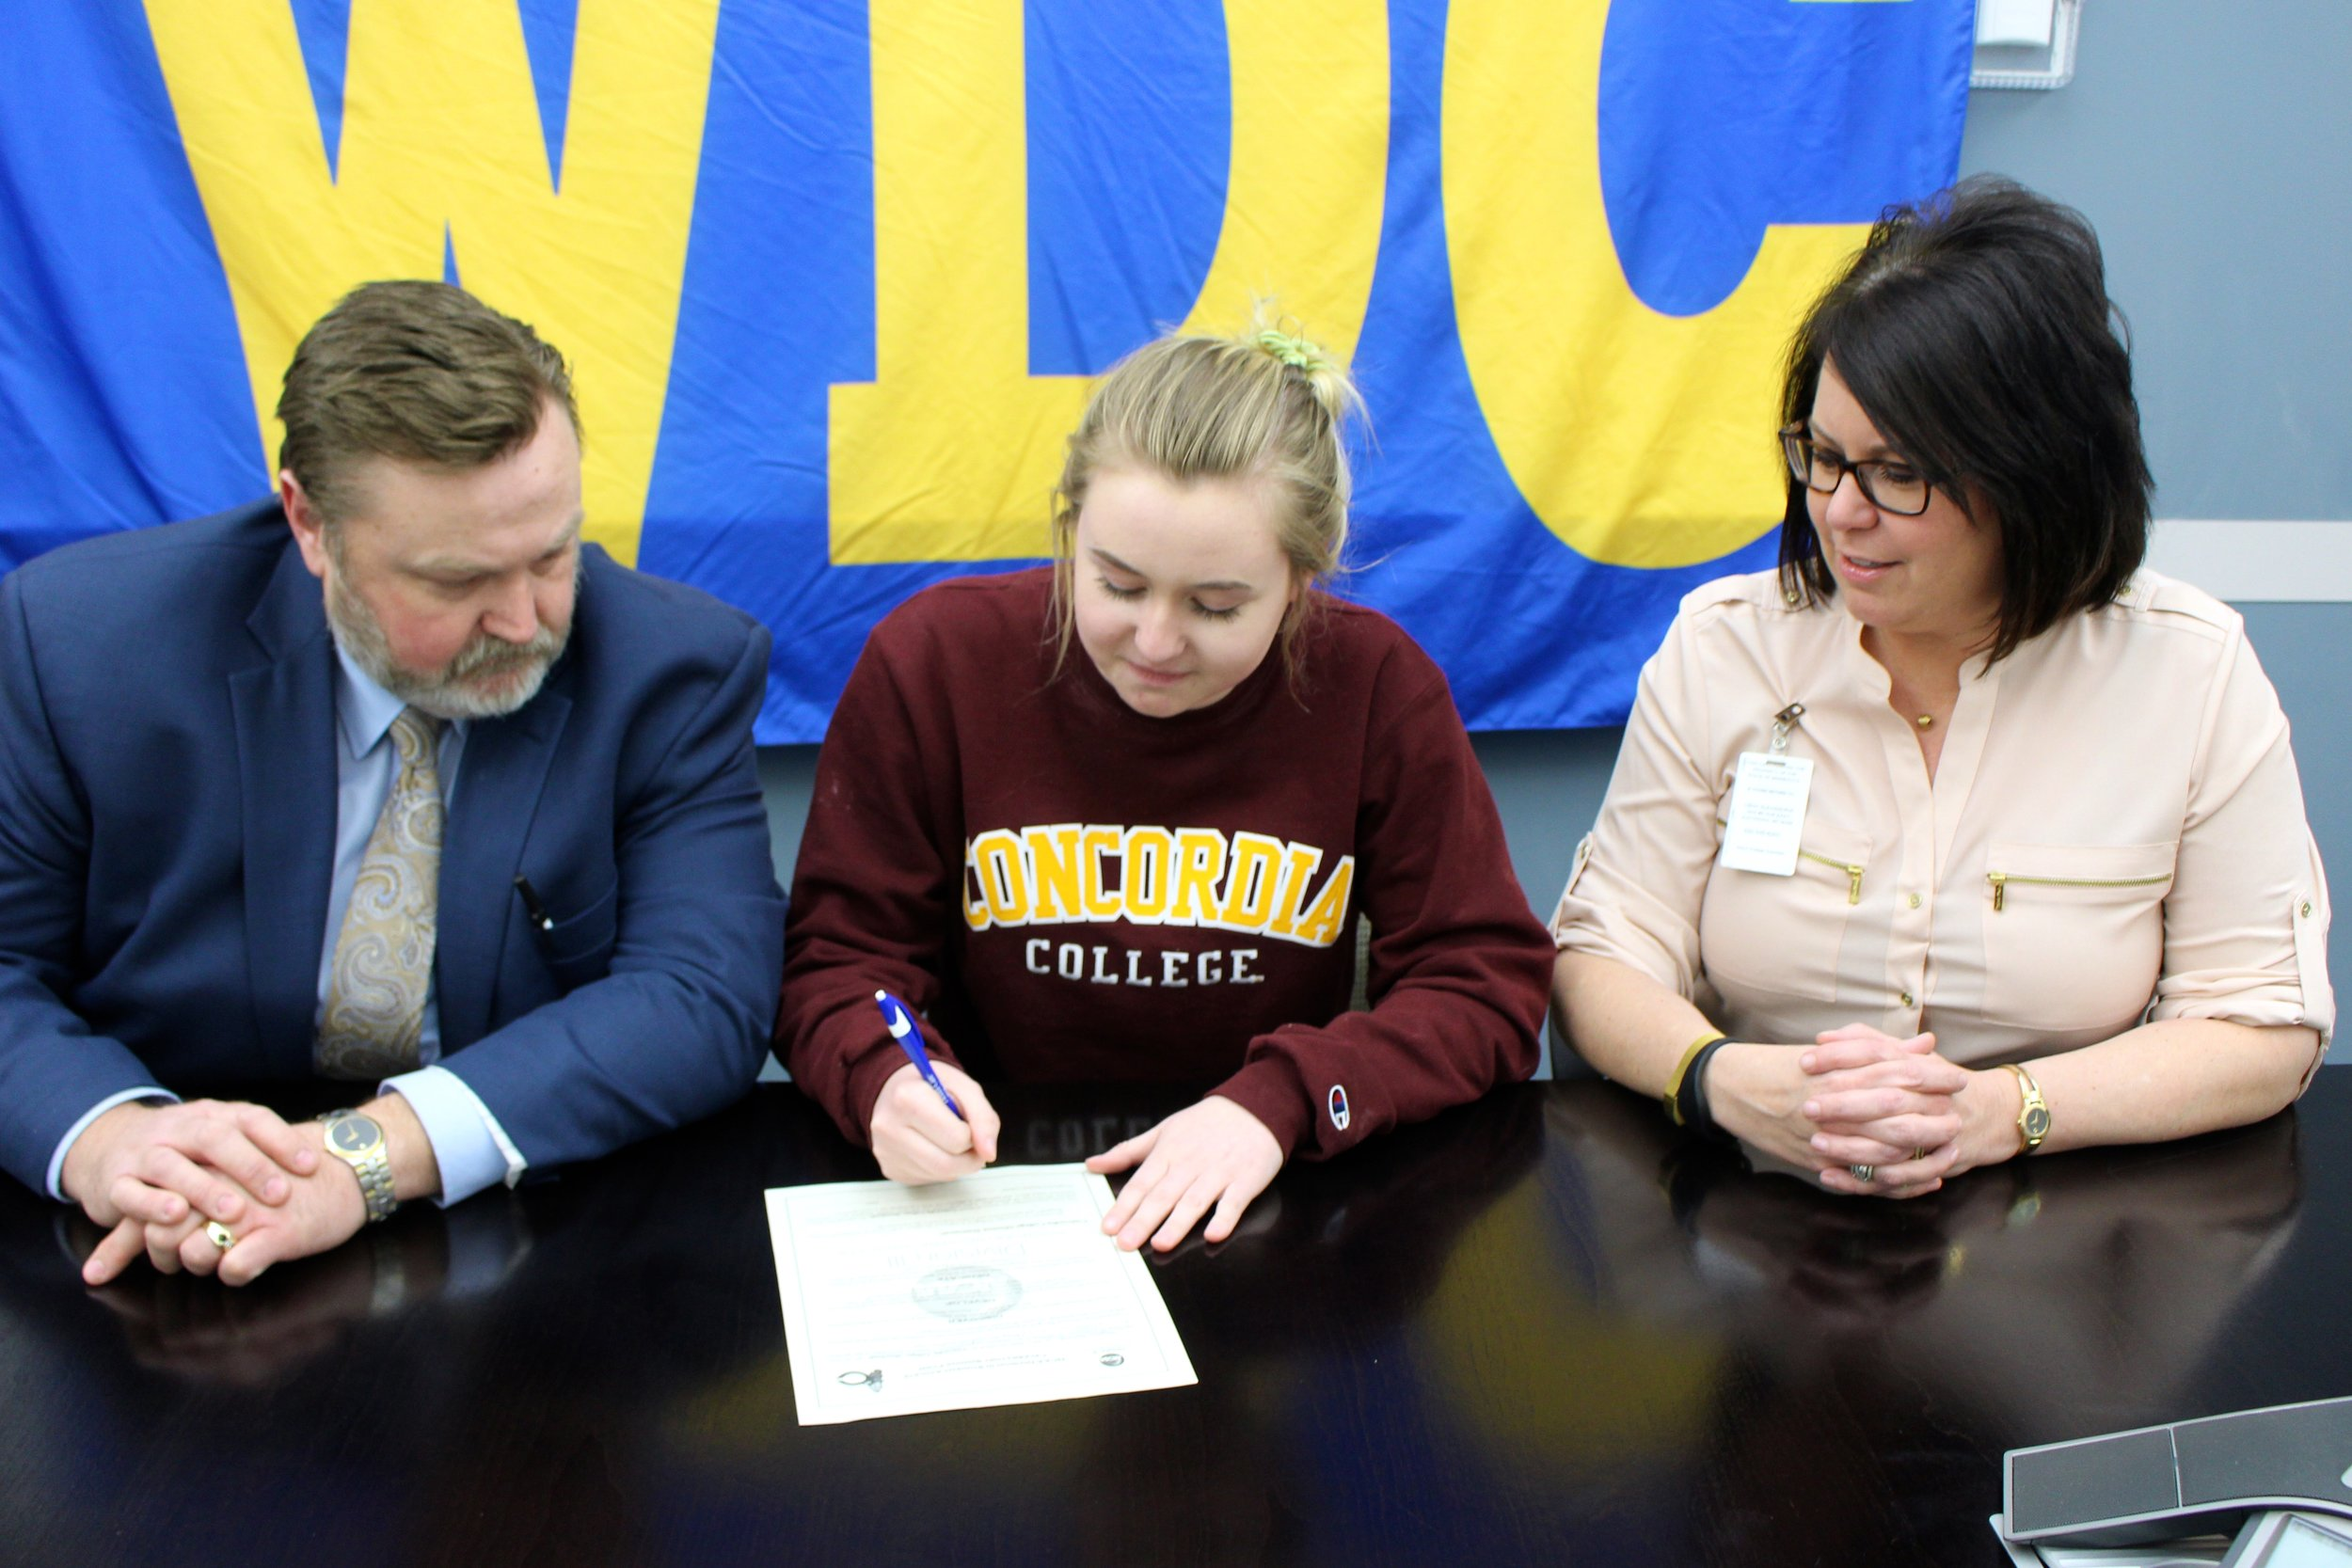 Big day for Abby Westrum! She signed her letter of intent this week to play tennis at Concordia College in Moorhead. Her proud parents, Lee and Jennifer Westrum, witness the signing.